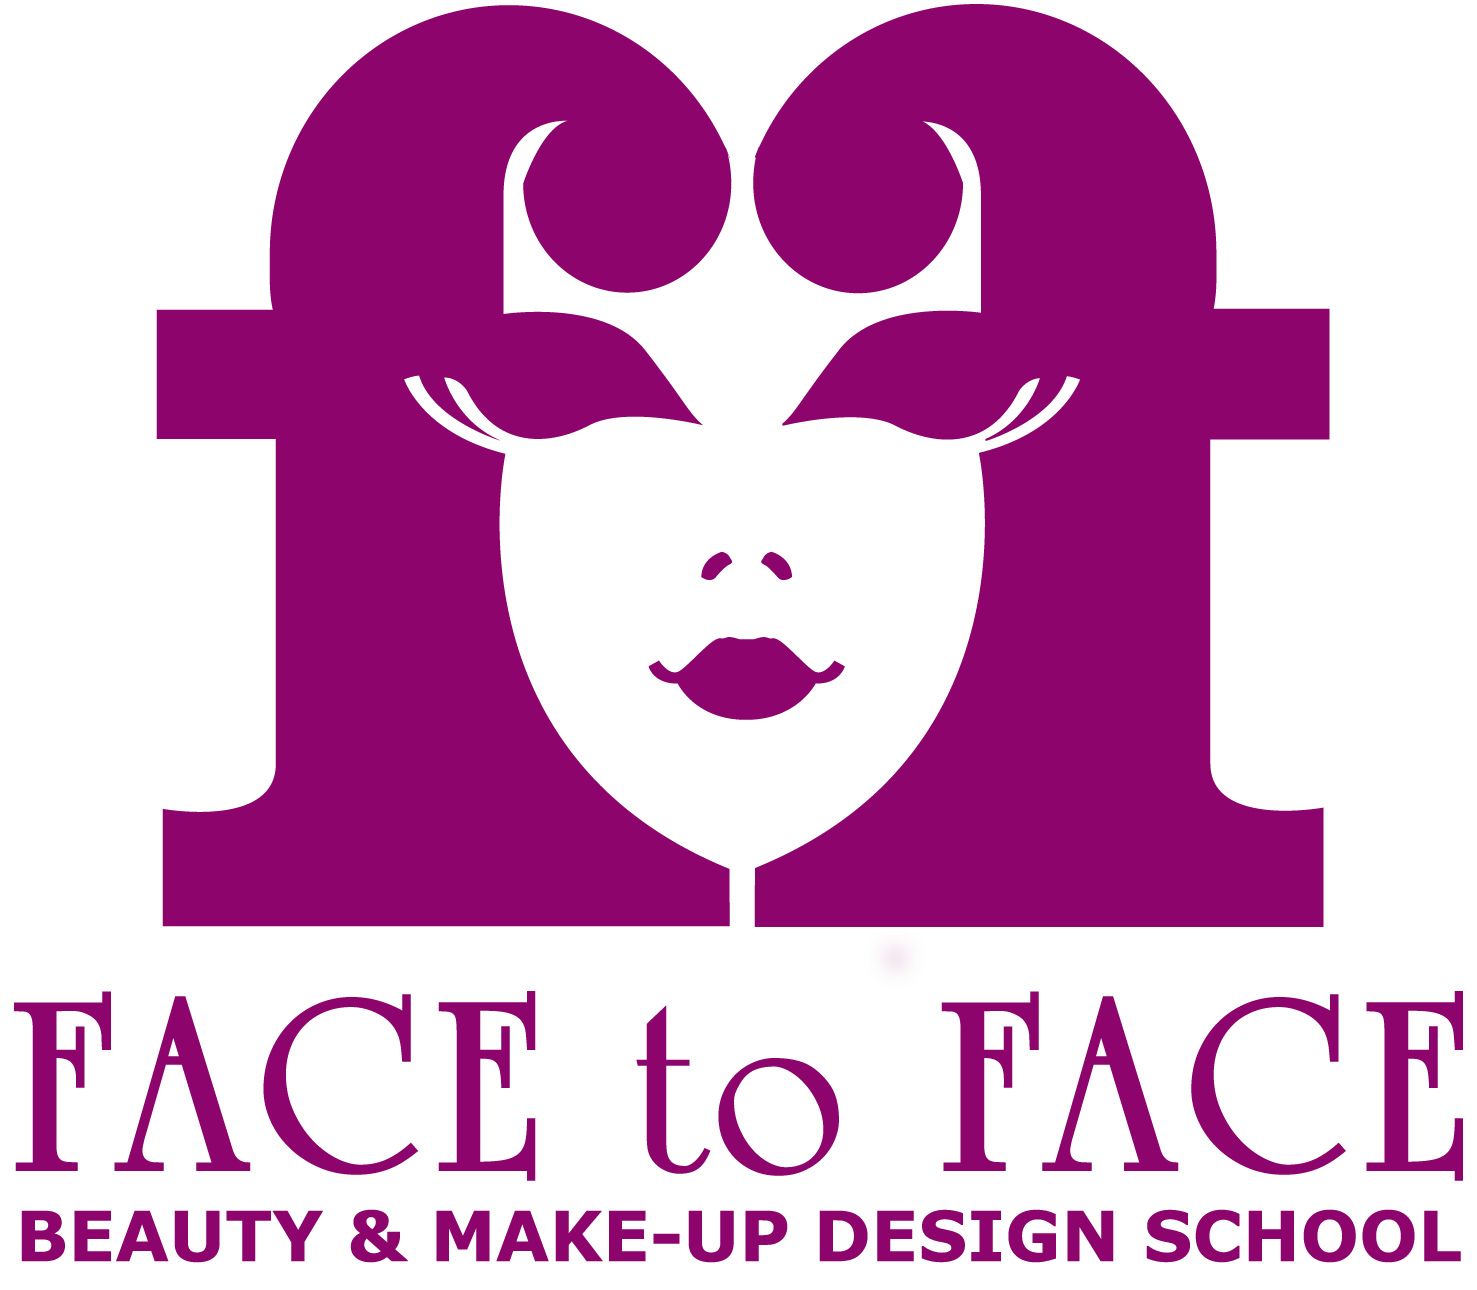 Face To Face Beauty and Make-up Design School Westrand